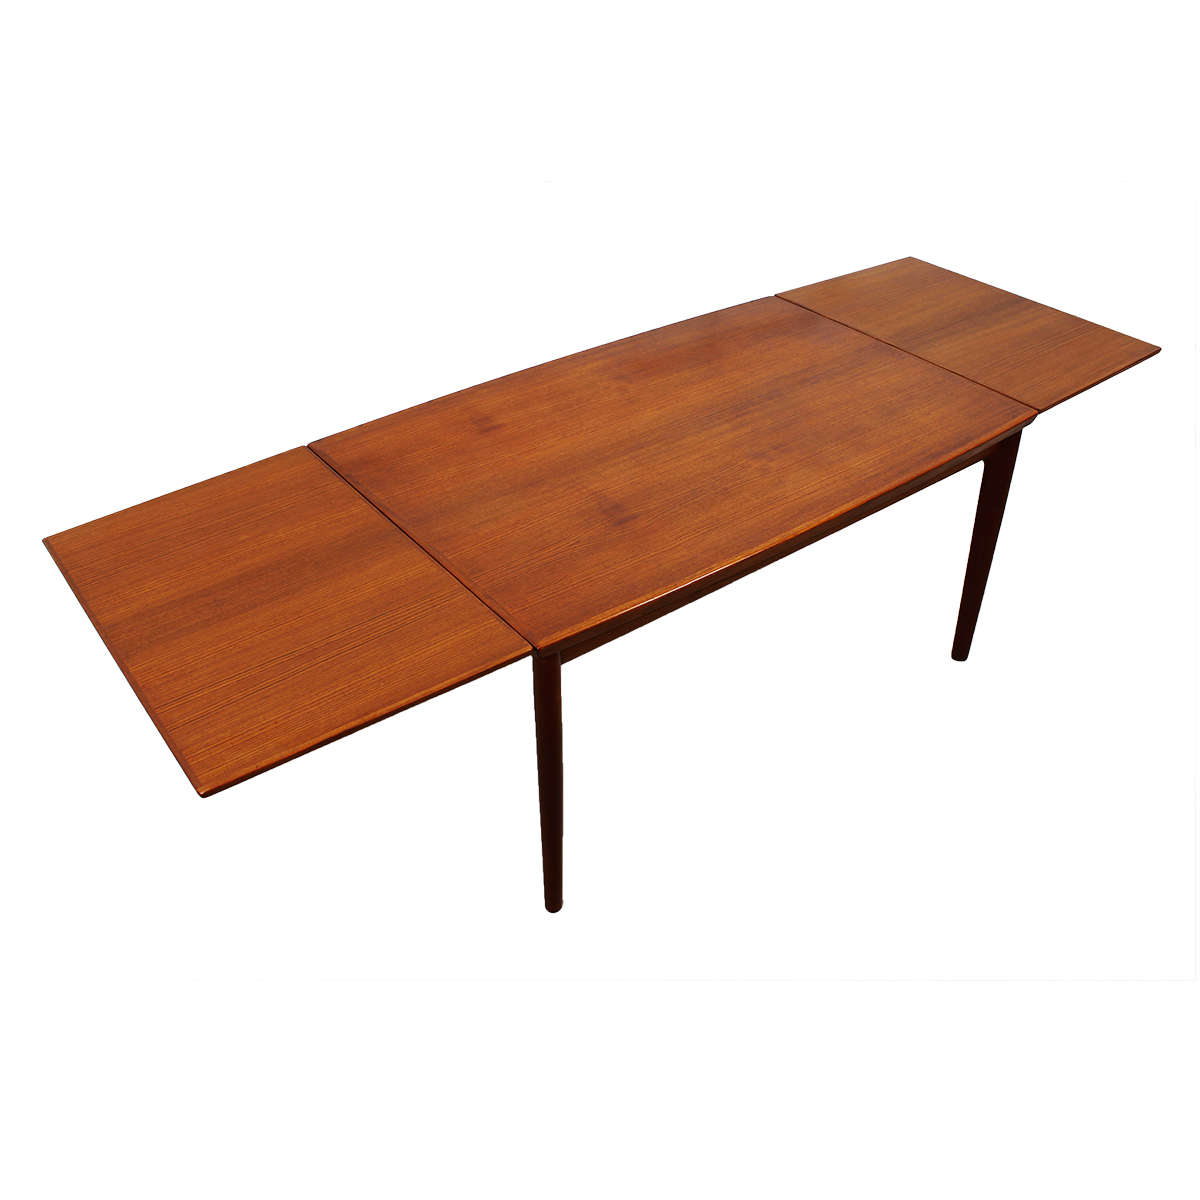 Early Danish Teak Expanding Dining Table w/ Tapered Hidden Leaves